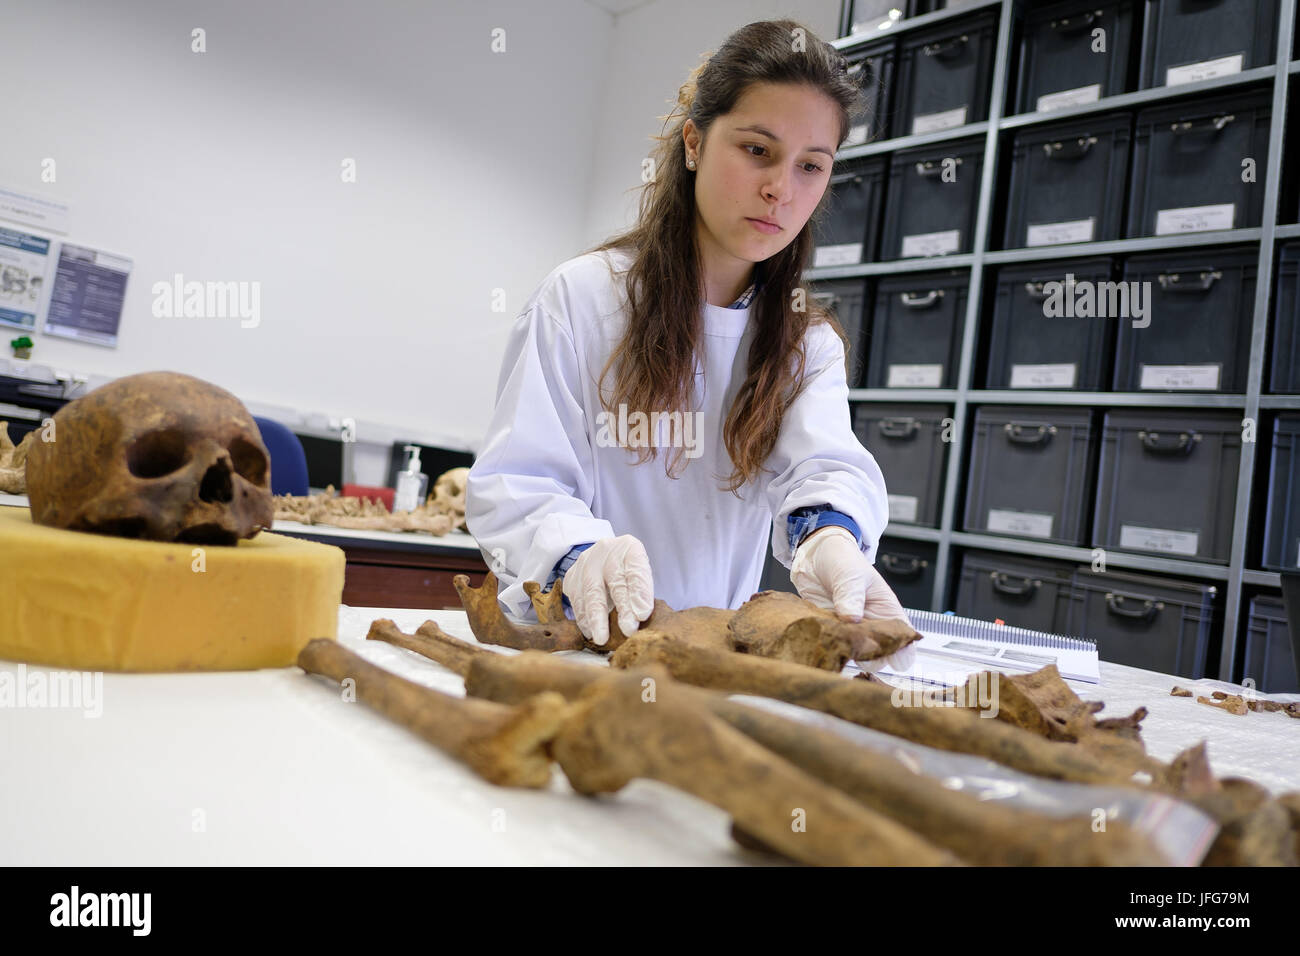 Forensic Anthropologist Working On An Ancient Skeleton Stock Photo Alamy